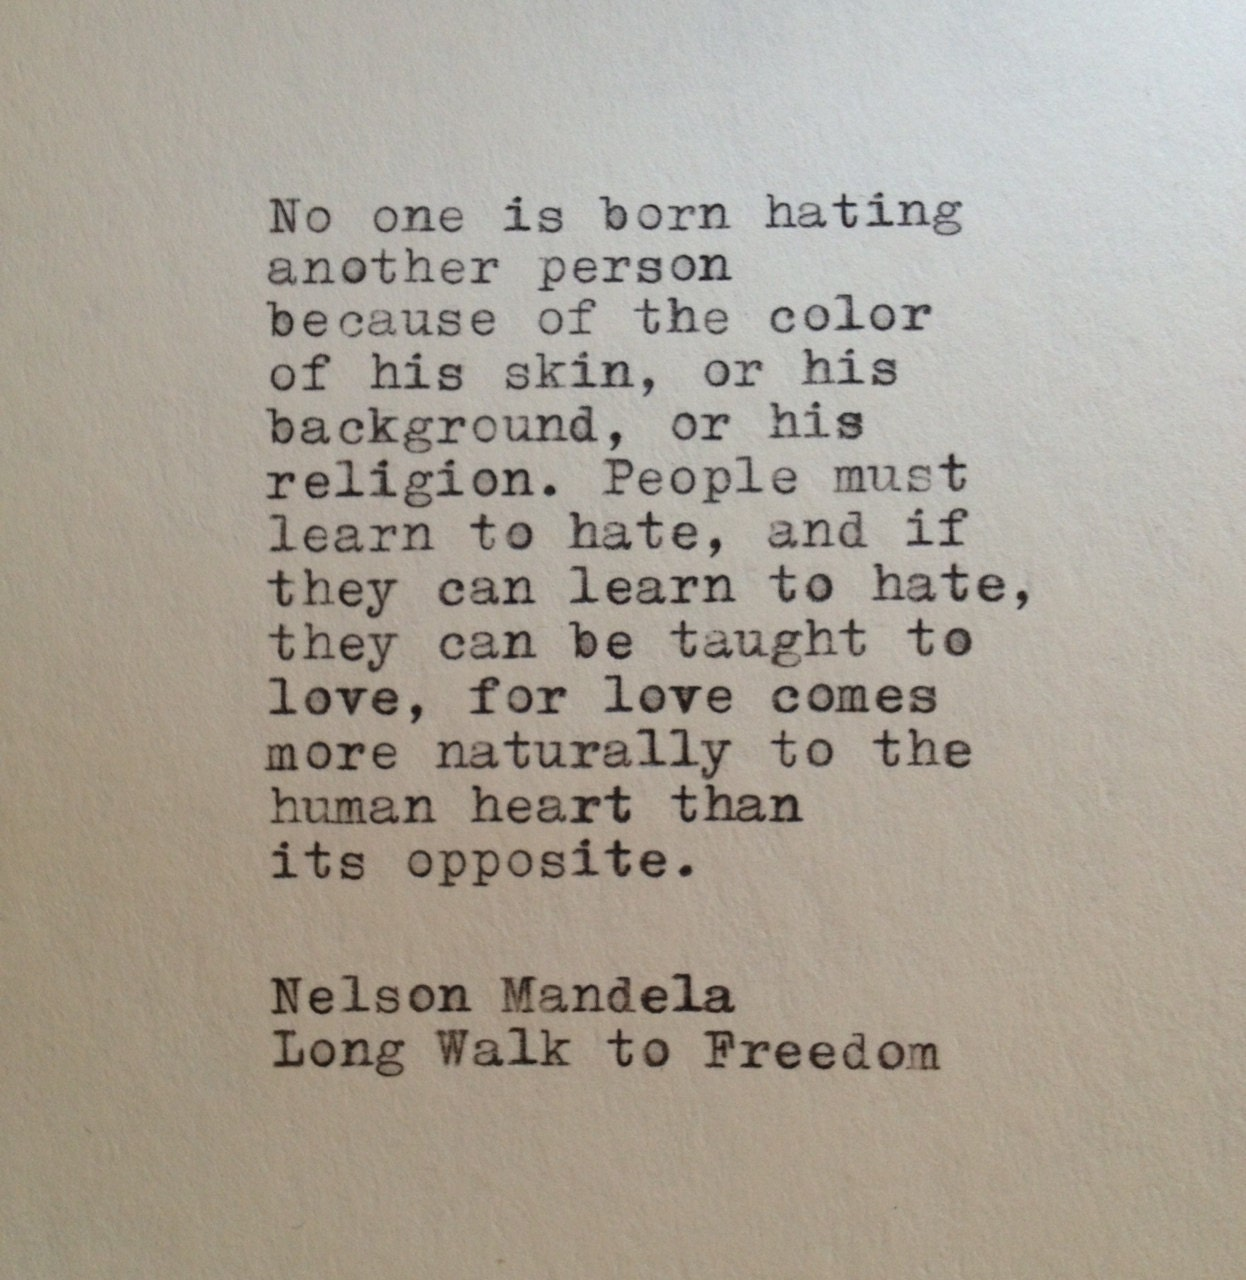 Spread Love Not Hate Quotes: Nelson Mandela Quote Typed On Typewriter By WhiteCellarDoor